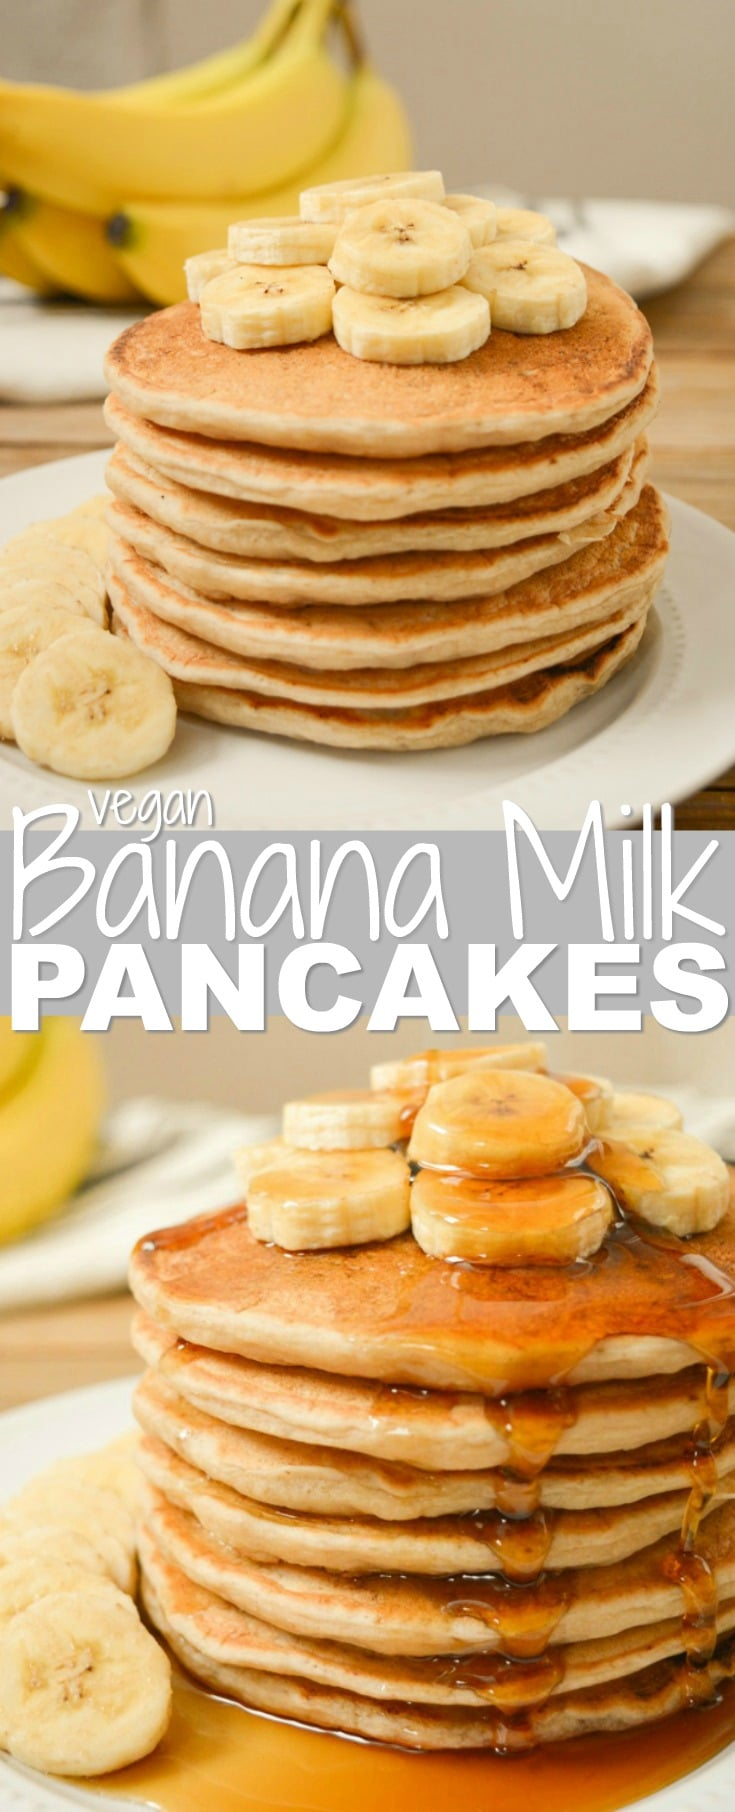 Vegan Banana Milk Pancakes are an allergy-friendly, egg-free, dairy-free and nut-free breakfast! Sweet, ripe bananas and coconut sugar keep these pancakes refined-sugar-free as well! Top your banana-filled pancake stack with extra banana slices and a good covering of maple syrup for an easy weekend brunch! #veganpancakes #veganrecipe #bananarecipe #bananapancakes #veganbreakfast #veganbrunch